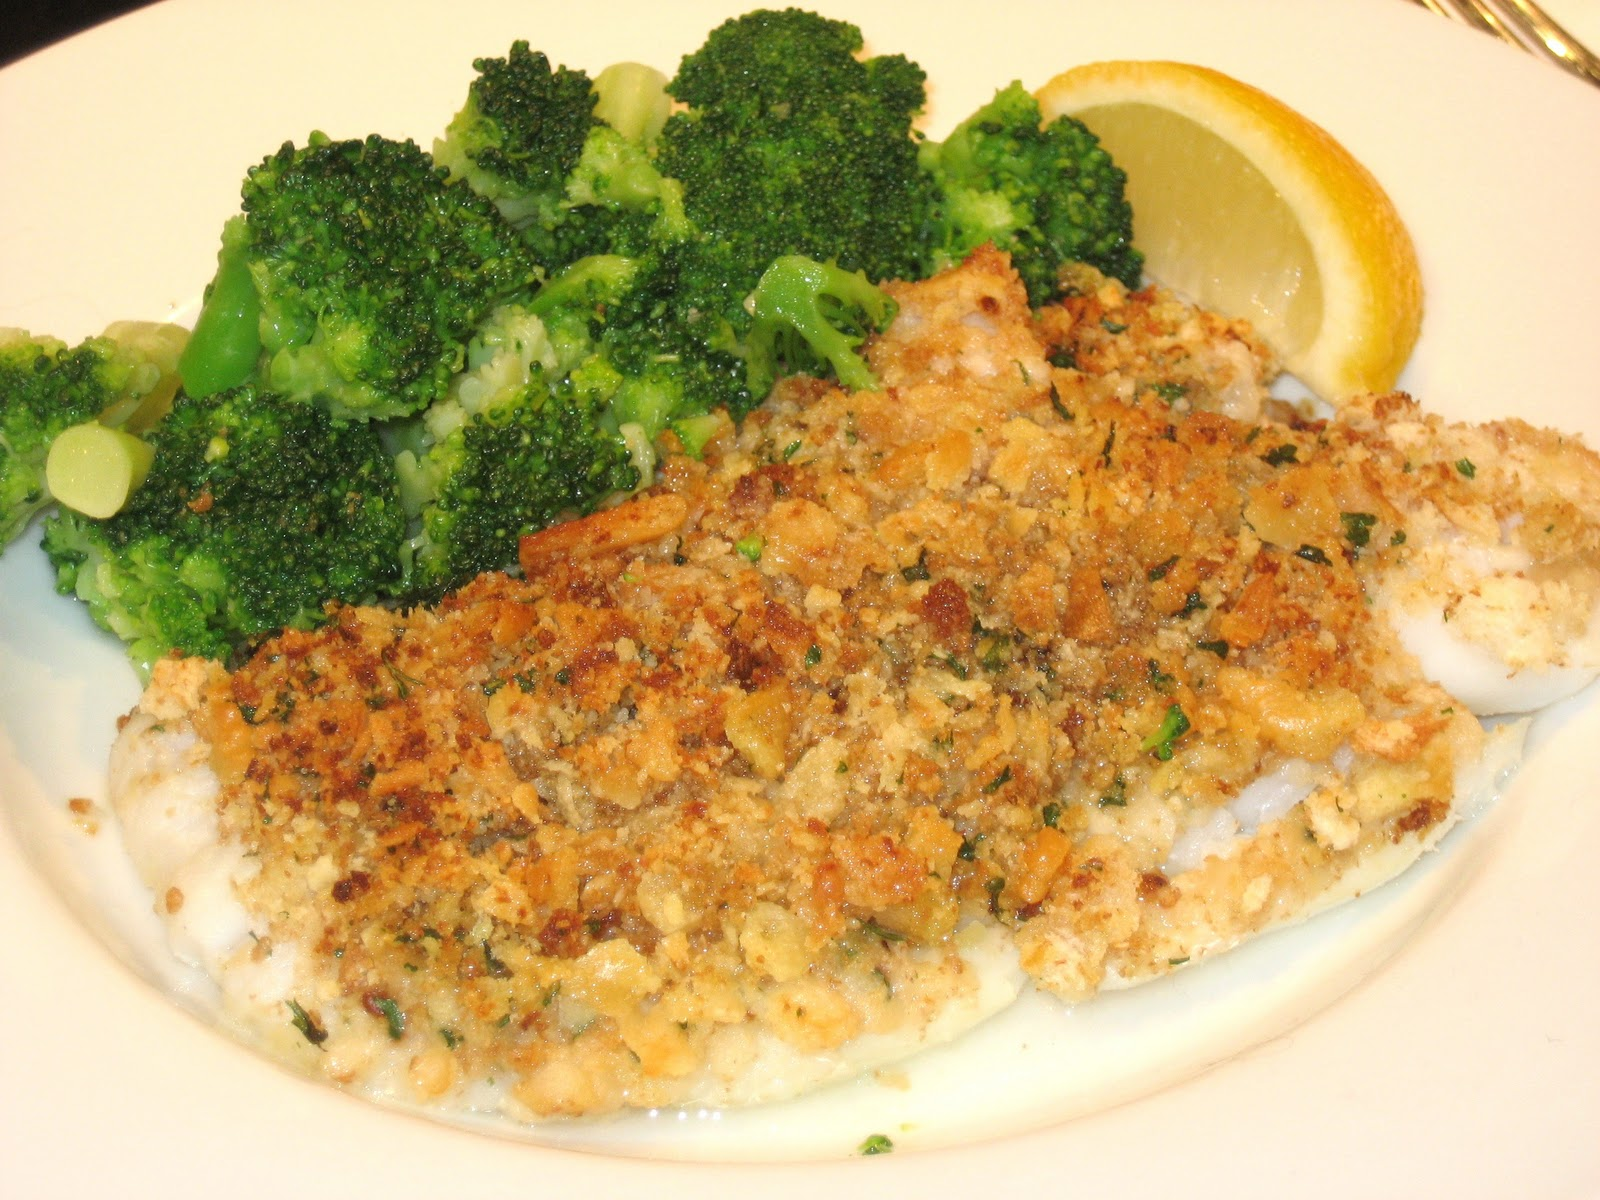 bread savory bread pudding baked fish with savory bread crumbs james ...